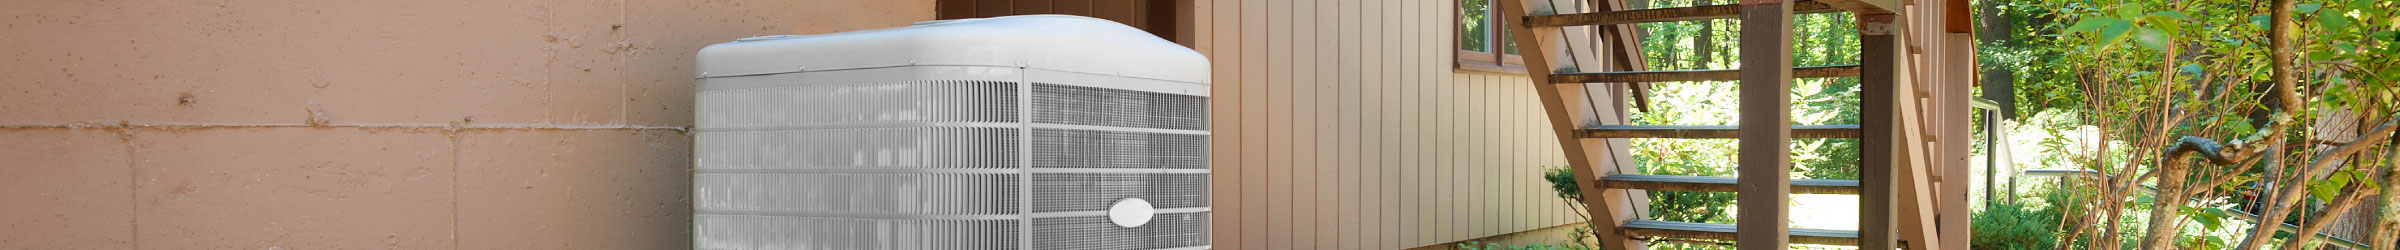 Harmonic Heating & Air Conditioning is Aurora's Cooling System Expert! Call us today.